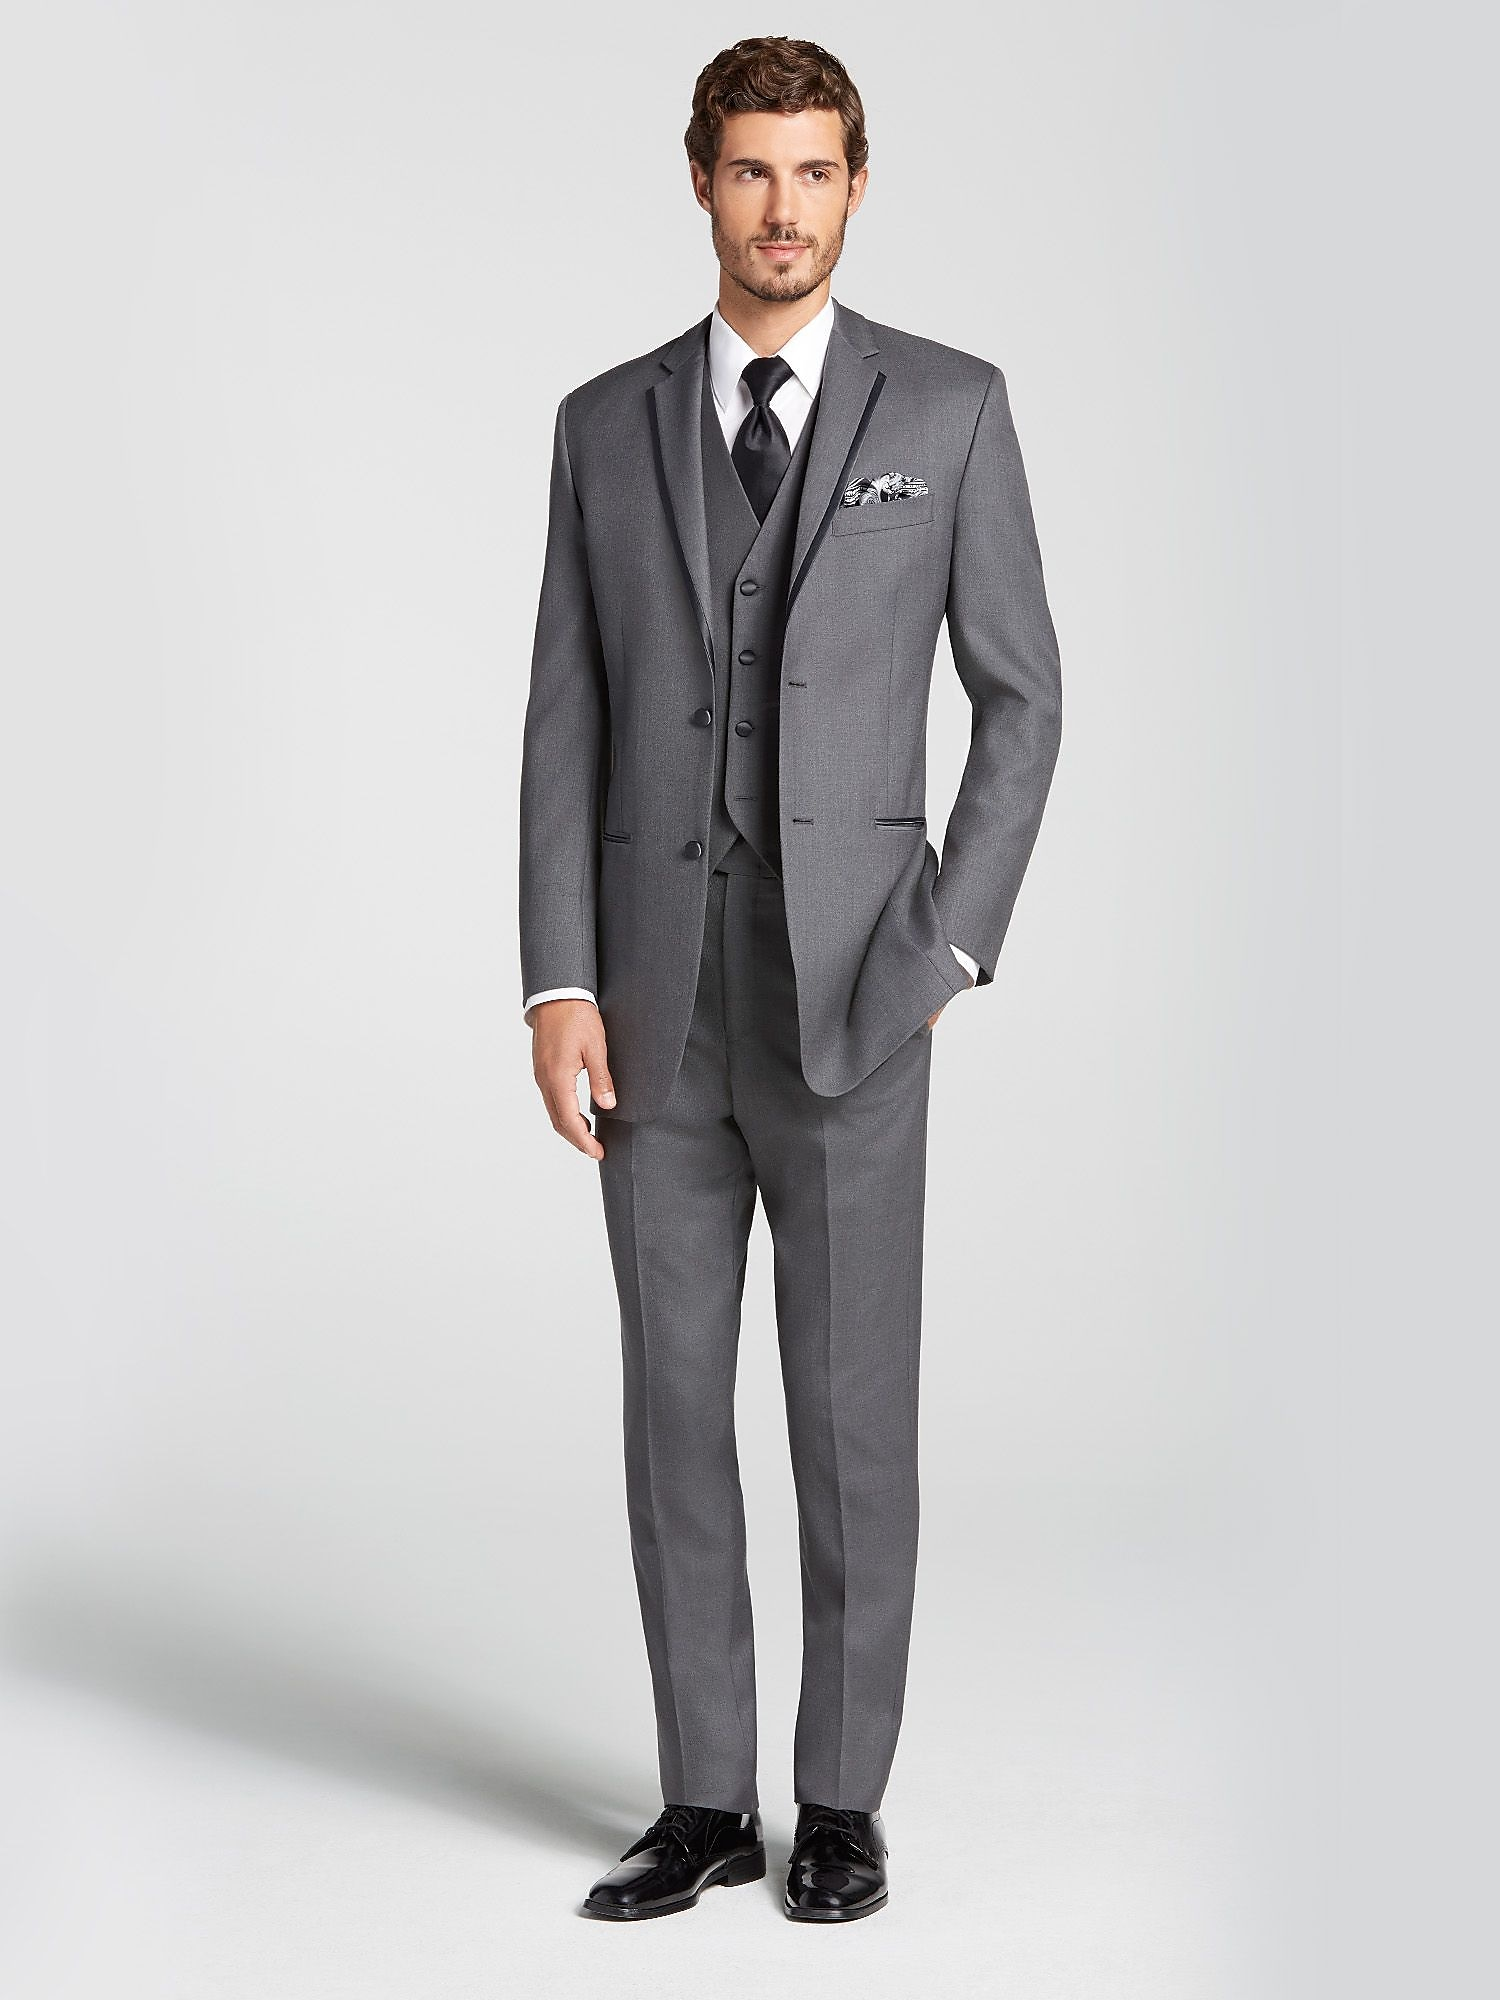 Black Cutaway Tuxedo by Joseph Feiss | Tuxedo Rental | Men\'s Wearhouse